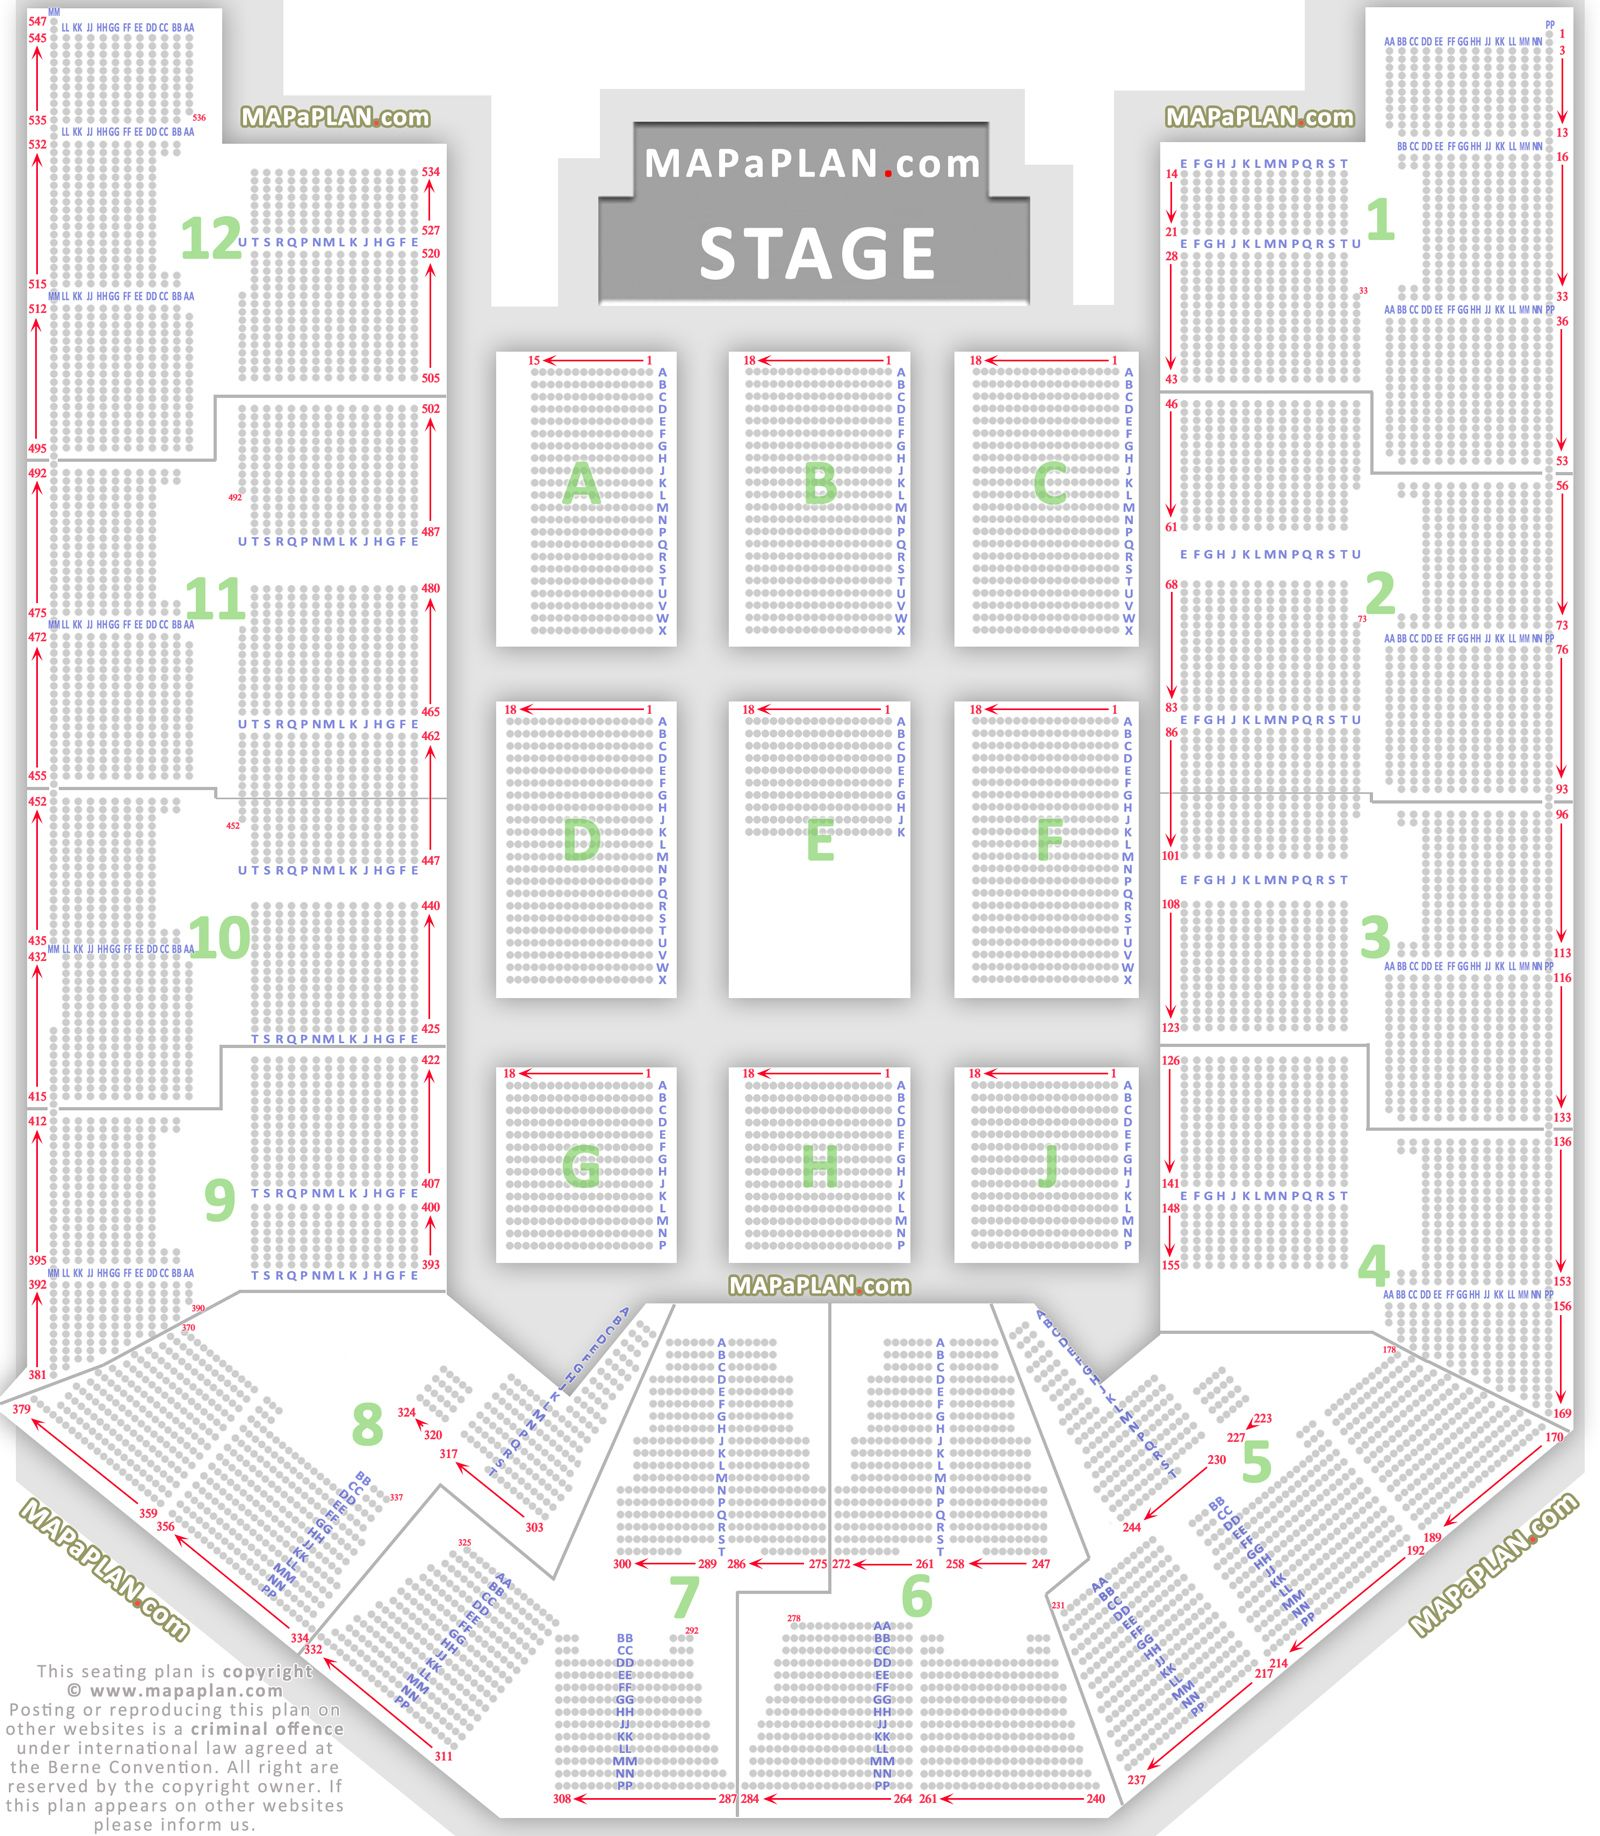 Nia Floor Plan Bjcc Seating Chart With Seat Numbers Brokeasshome Com